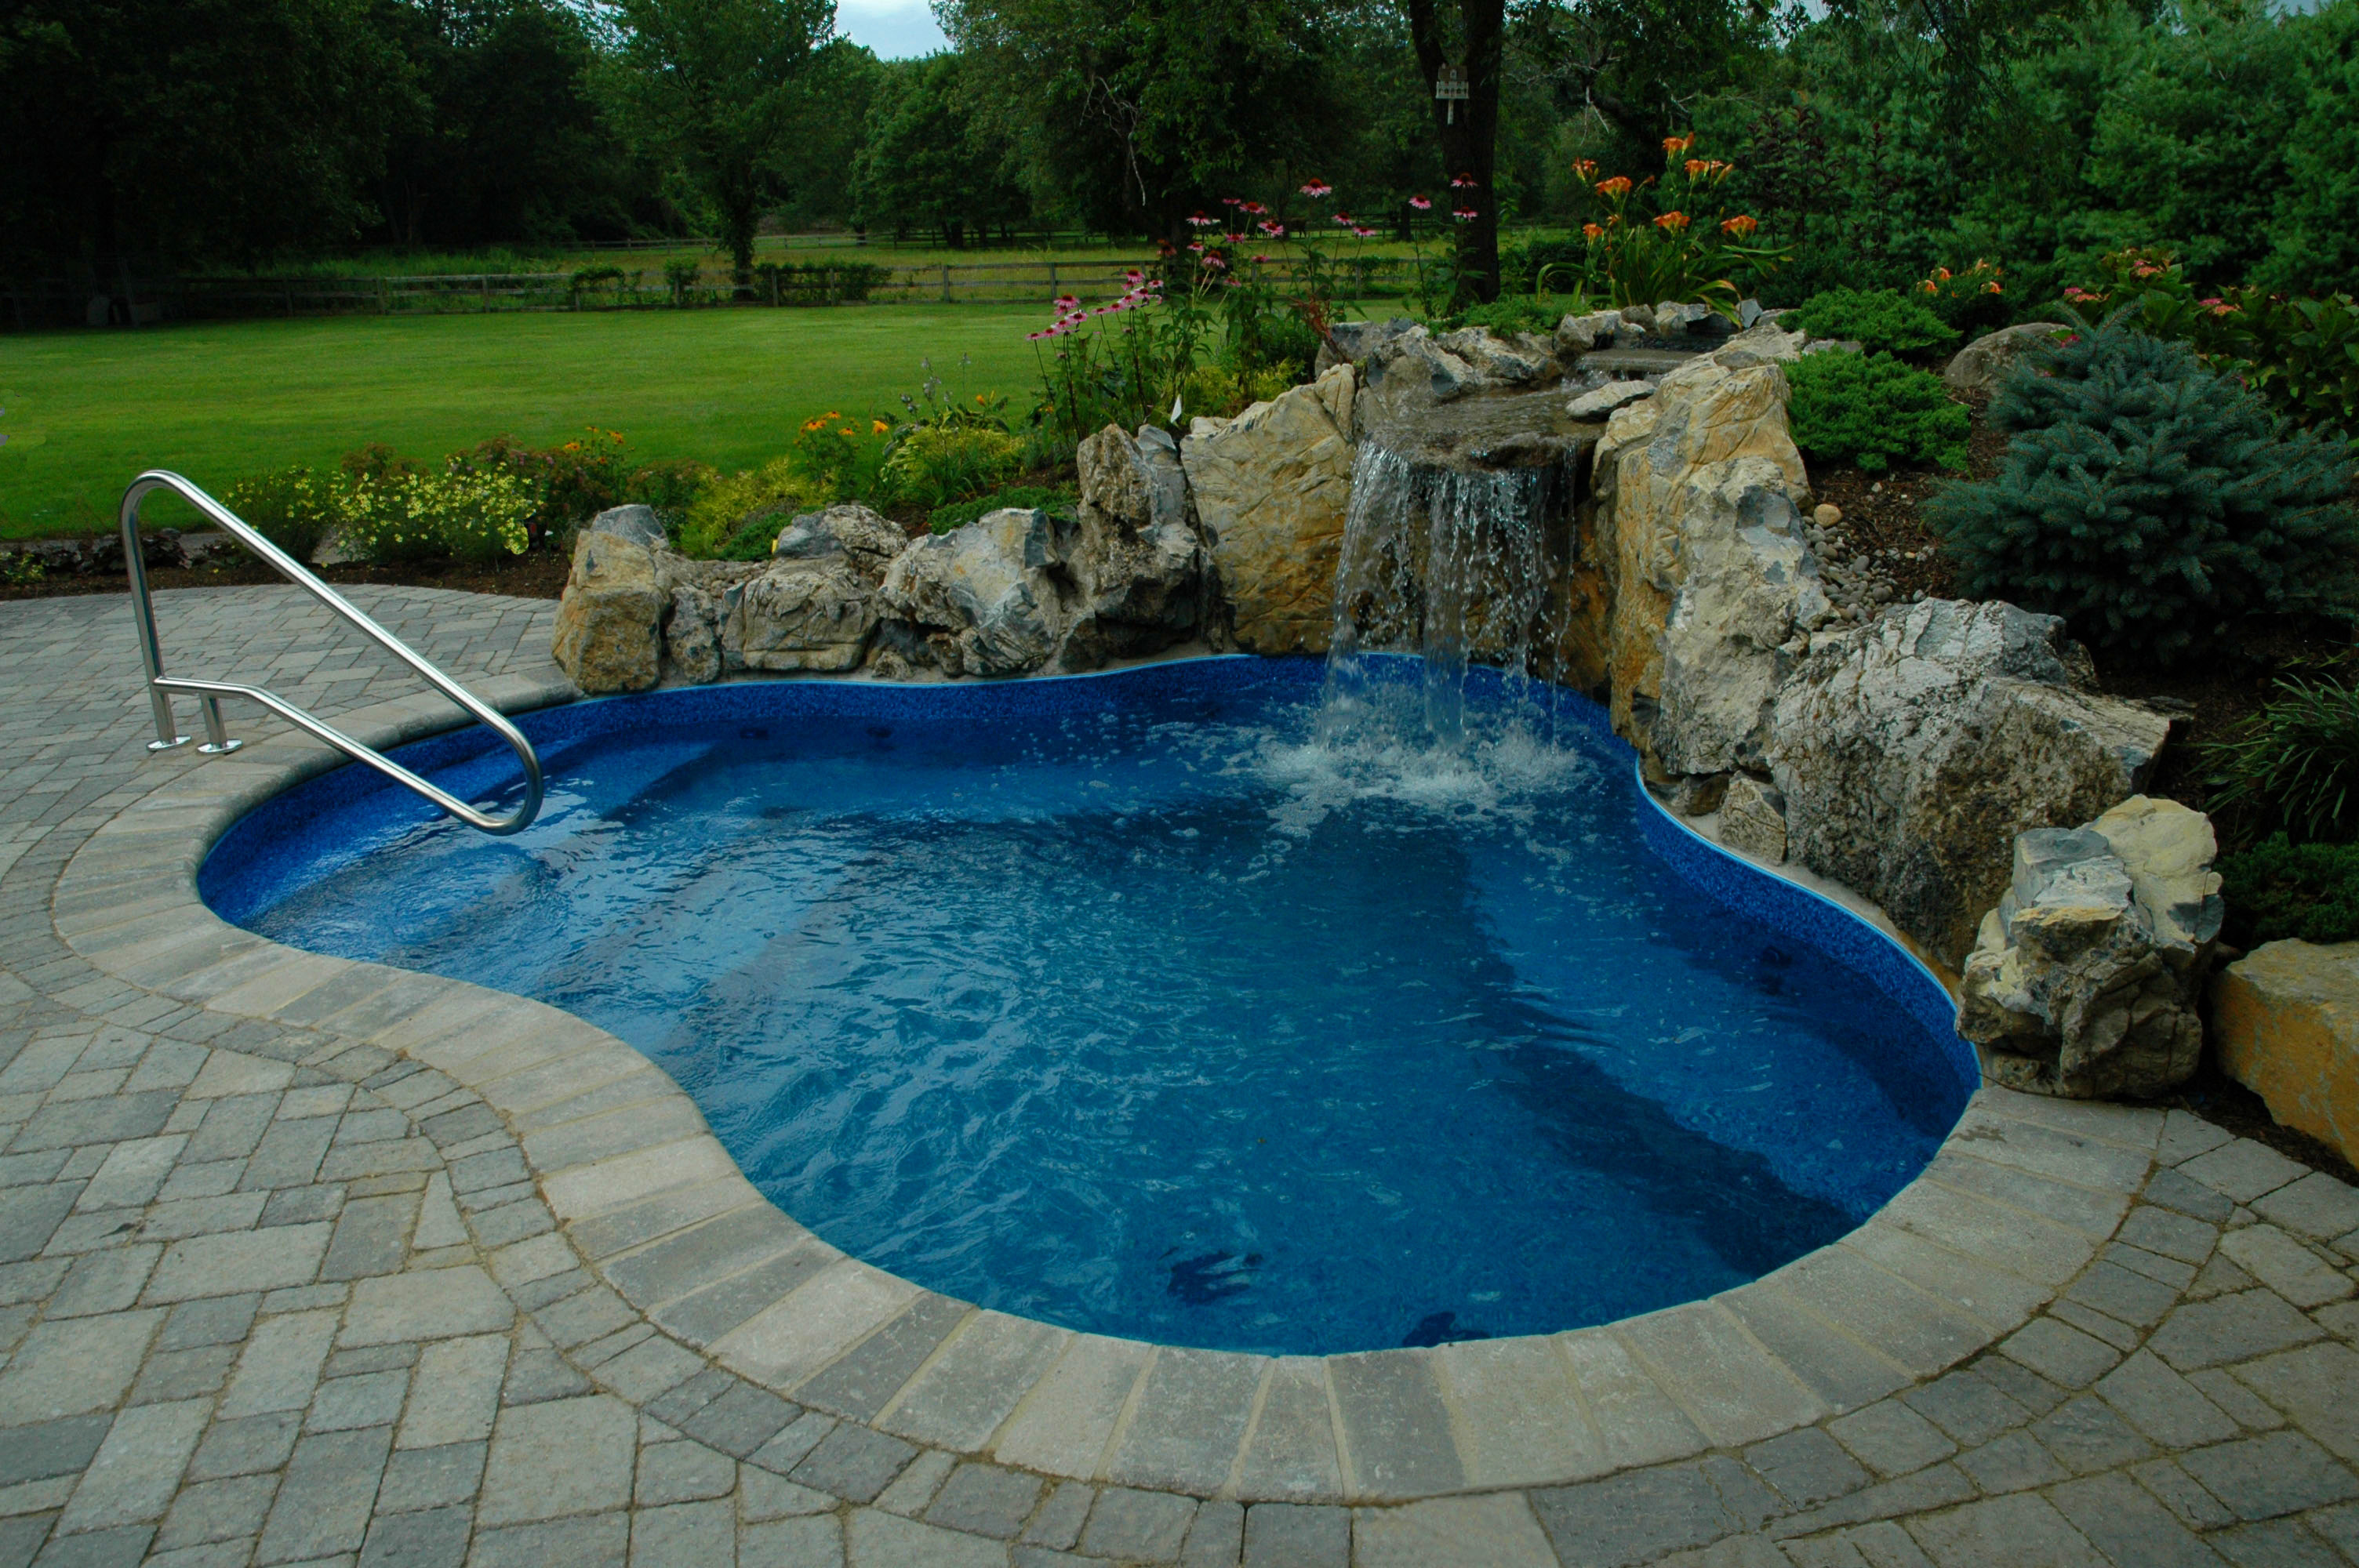 Interesting Small Swimming Pool With Gorgeous Mini Waterfall Also Hardstone Paving Overlooking Green Gr Land